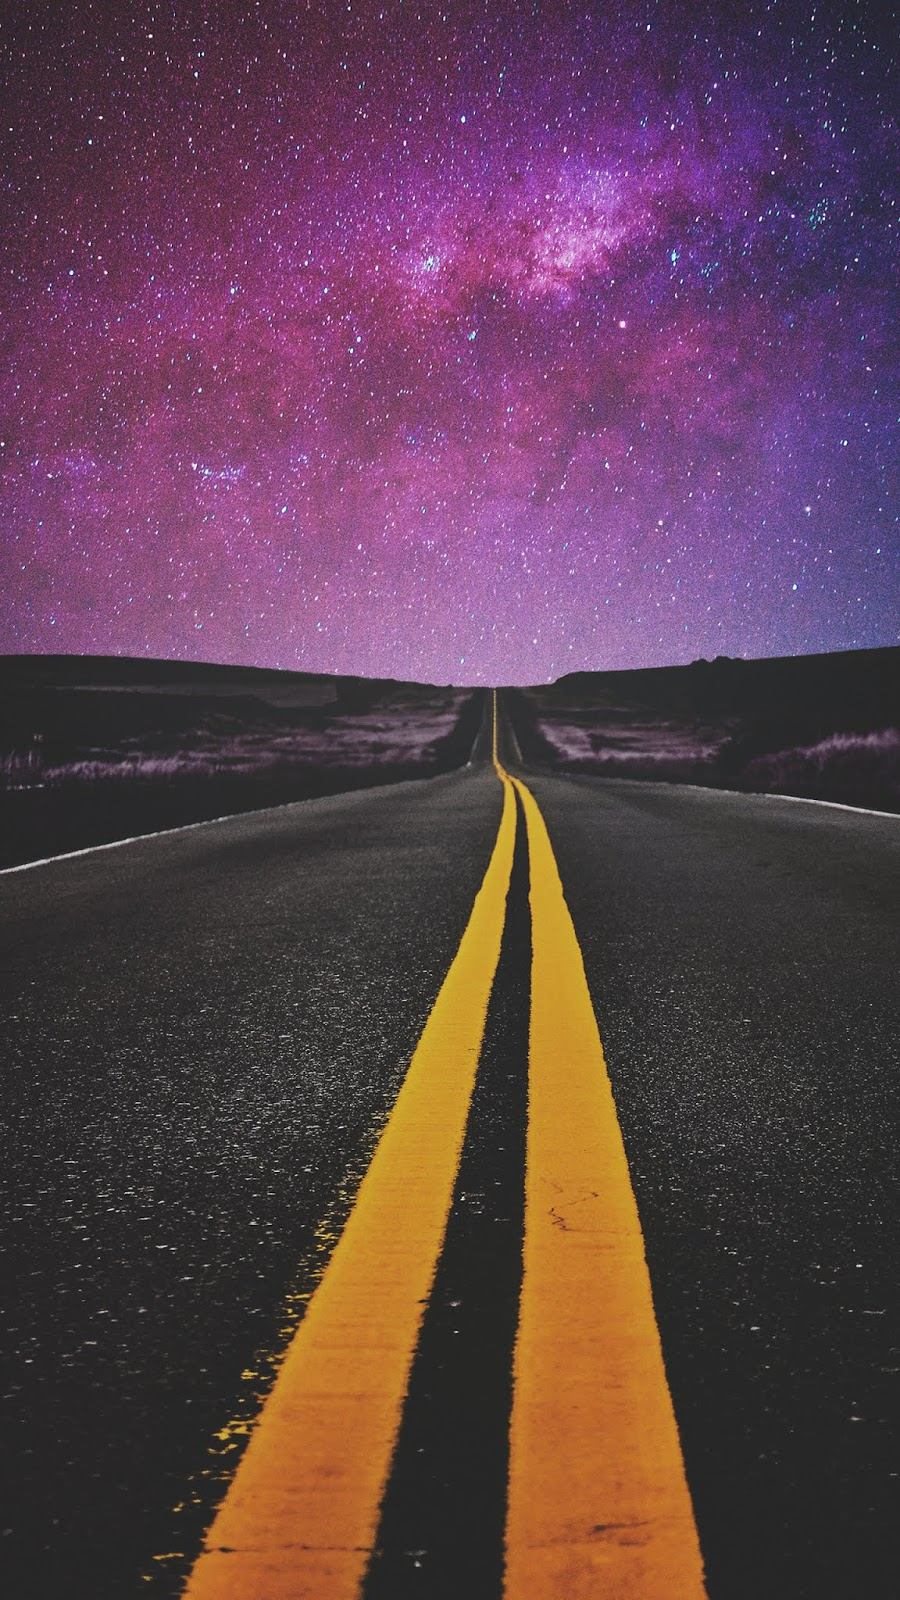 Road in the night by matialonsor